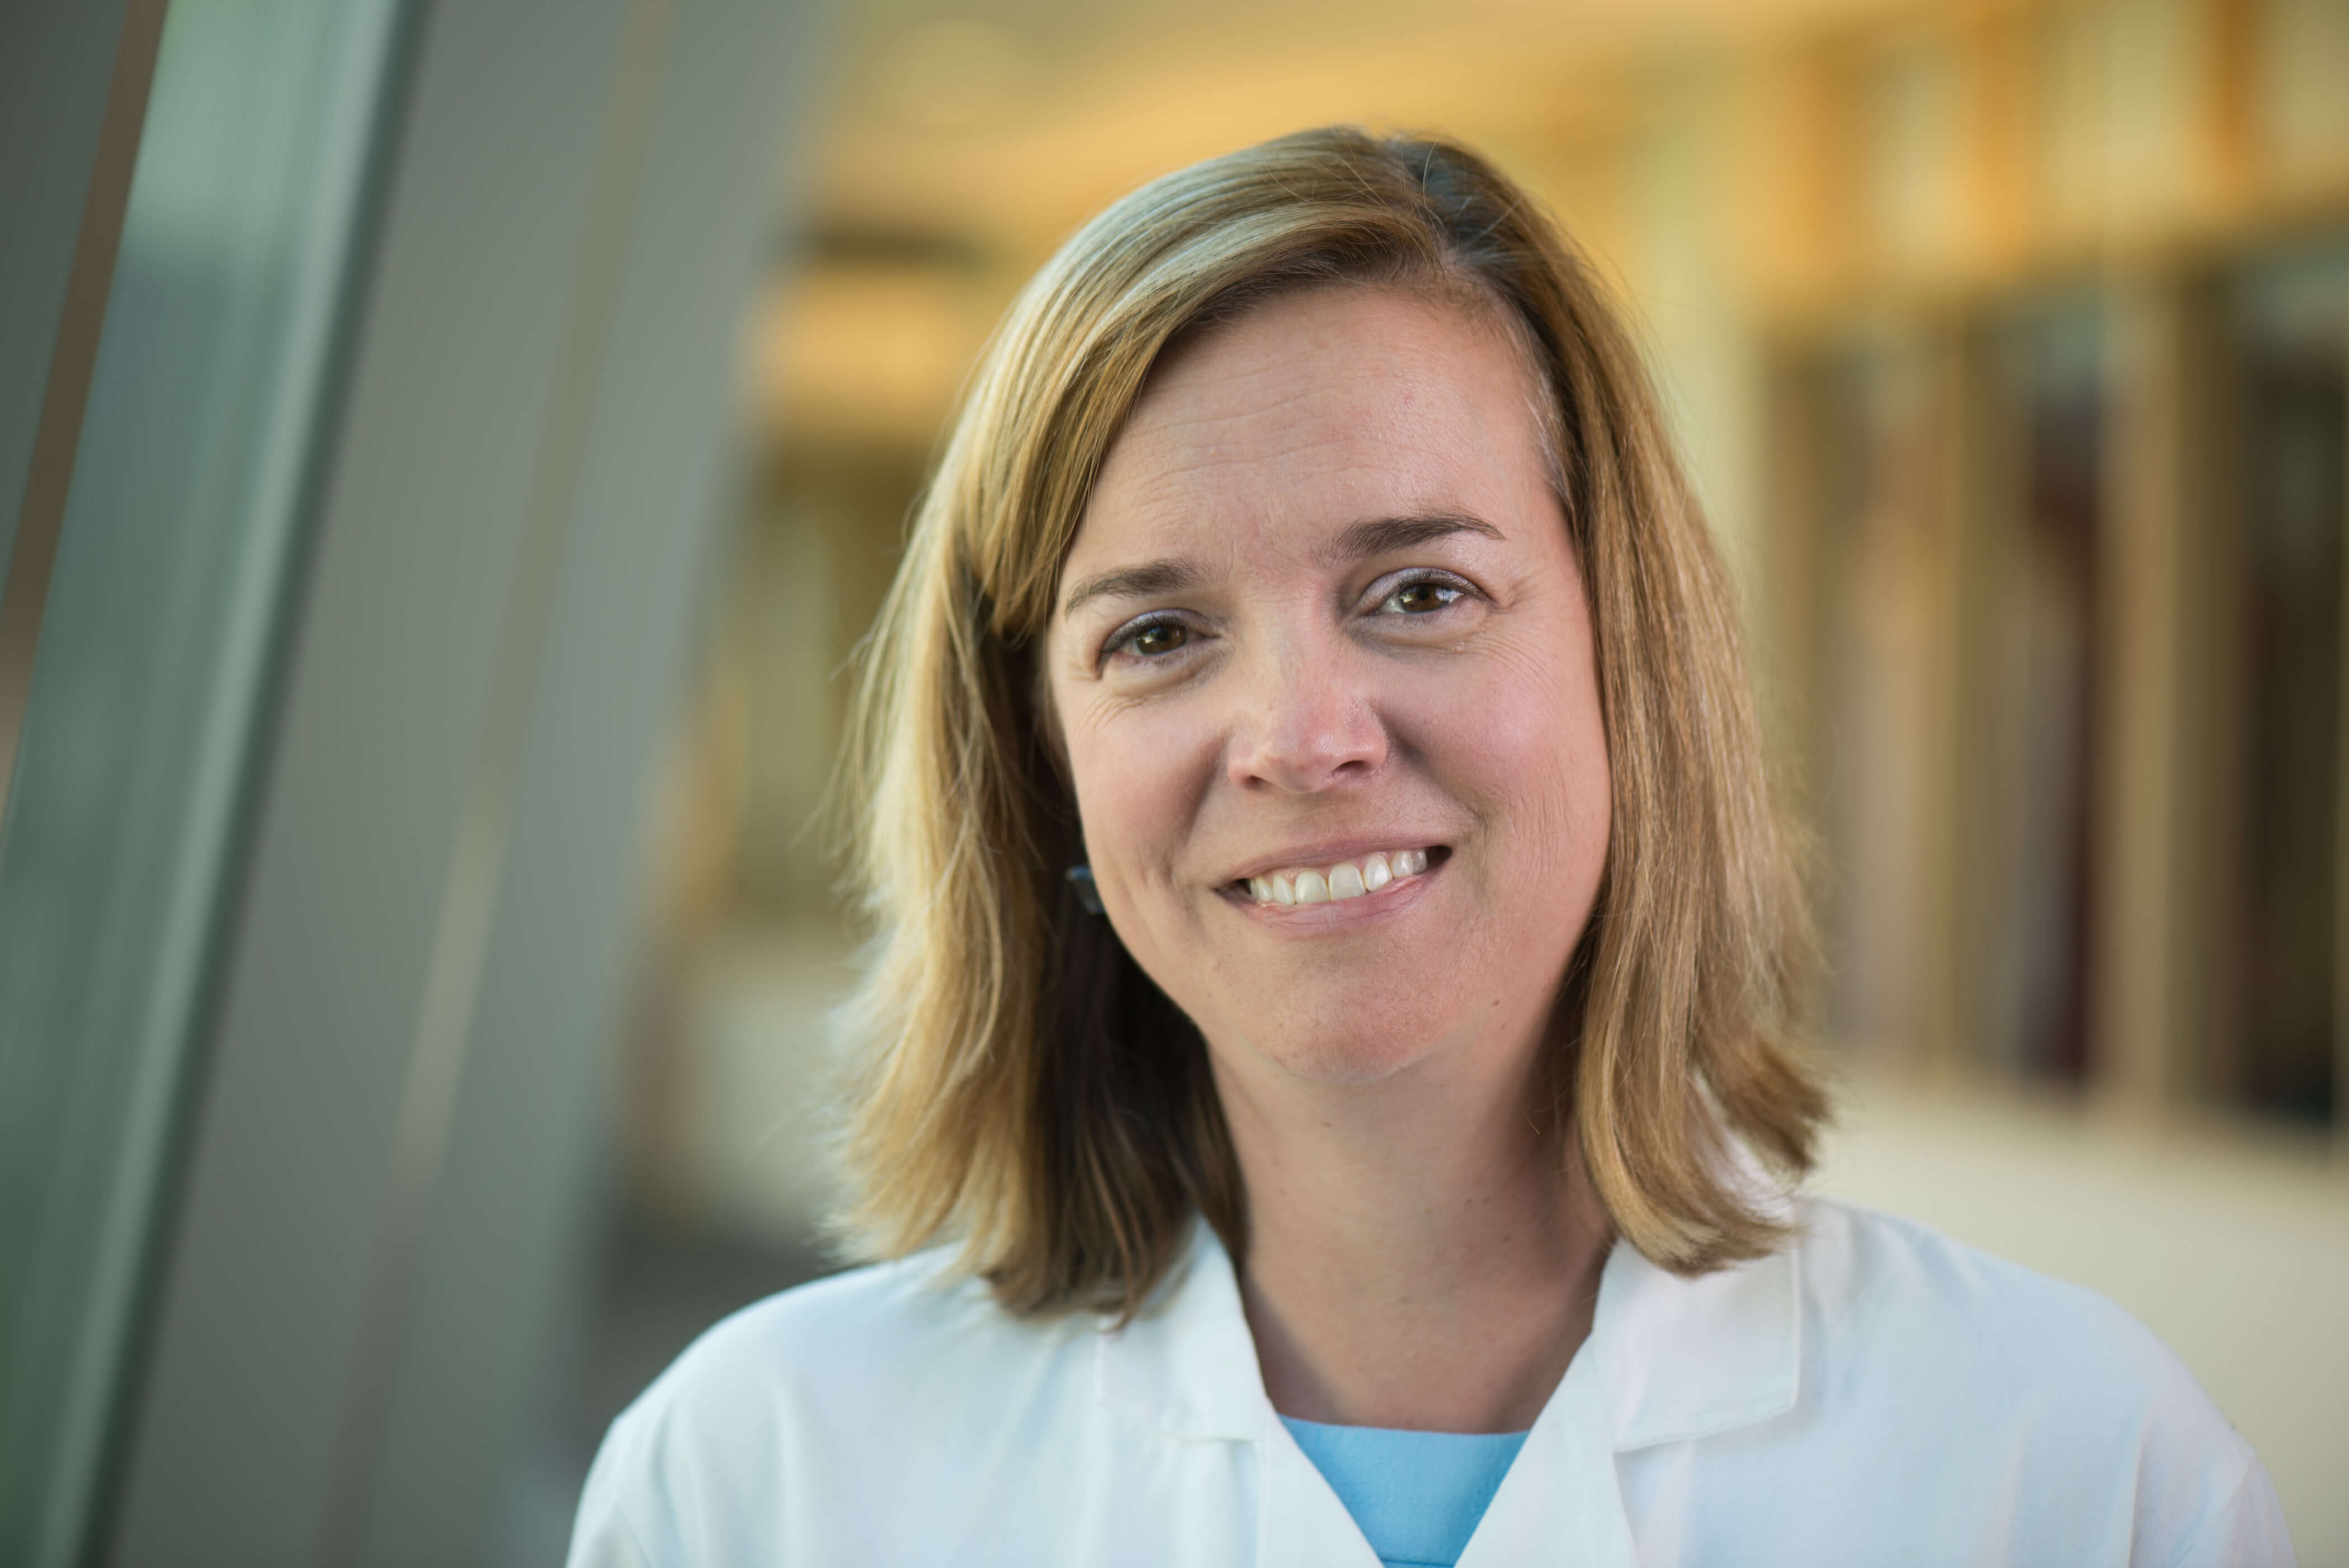 Kristen Pierce, MD, smiling headshot